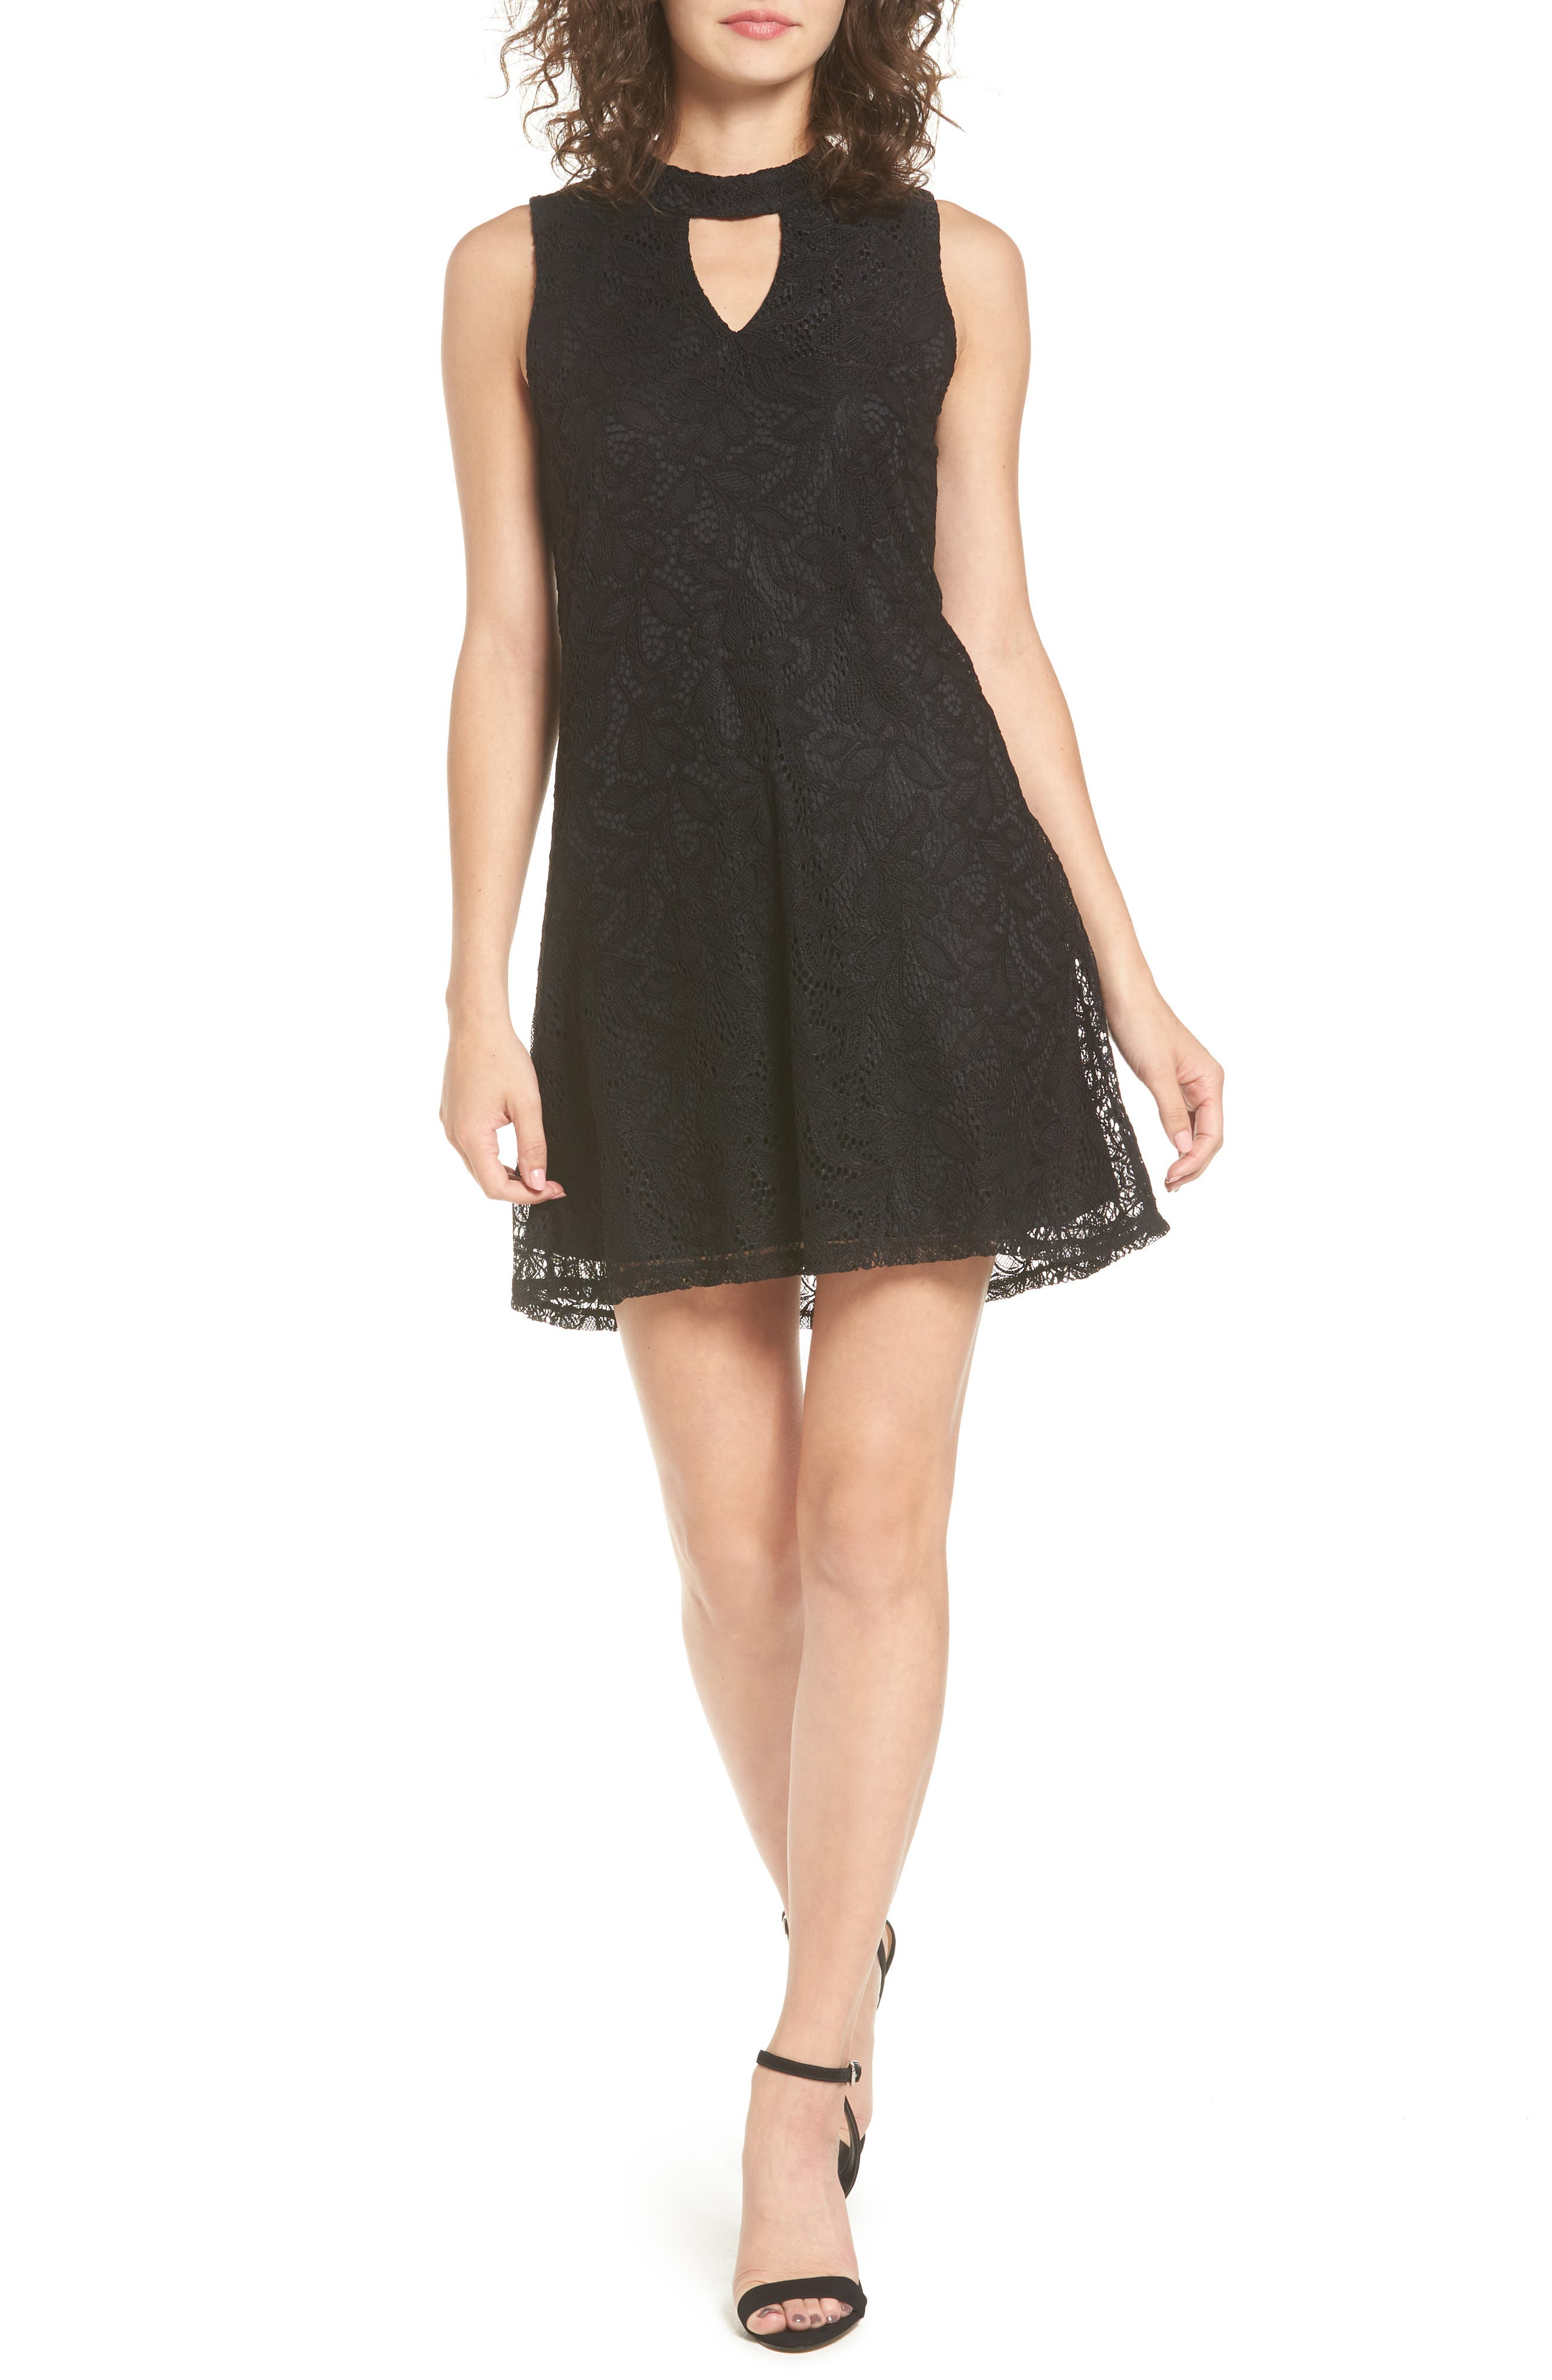 As You Wish Keyhole Lace Dress